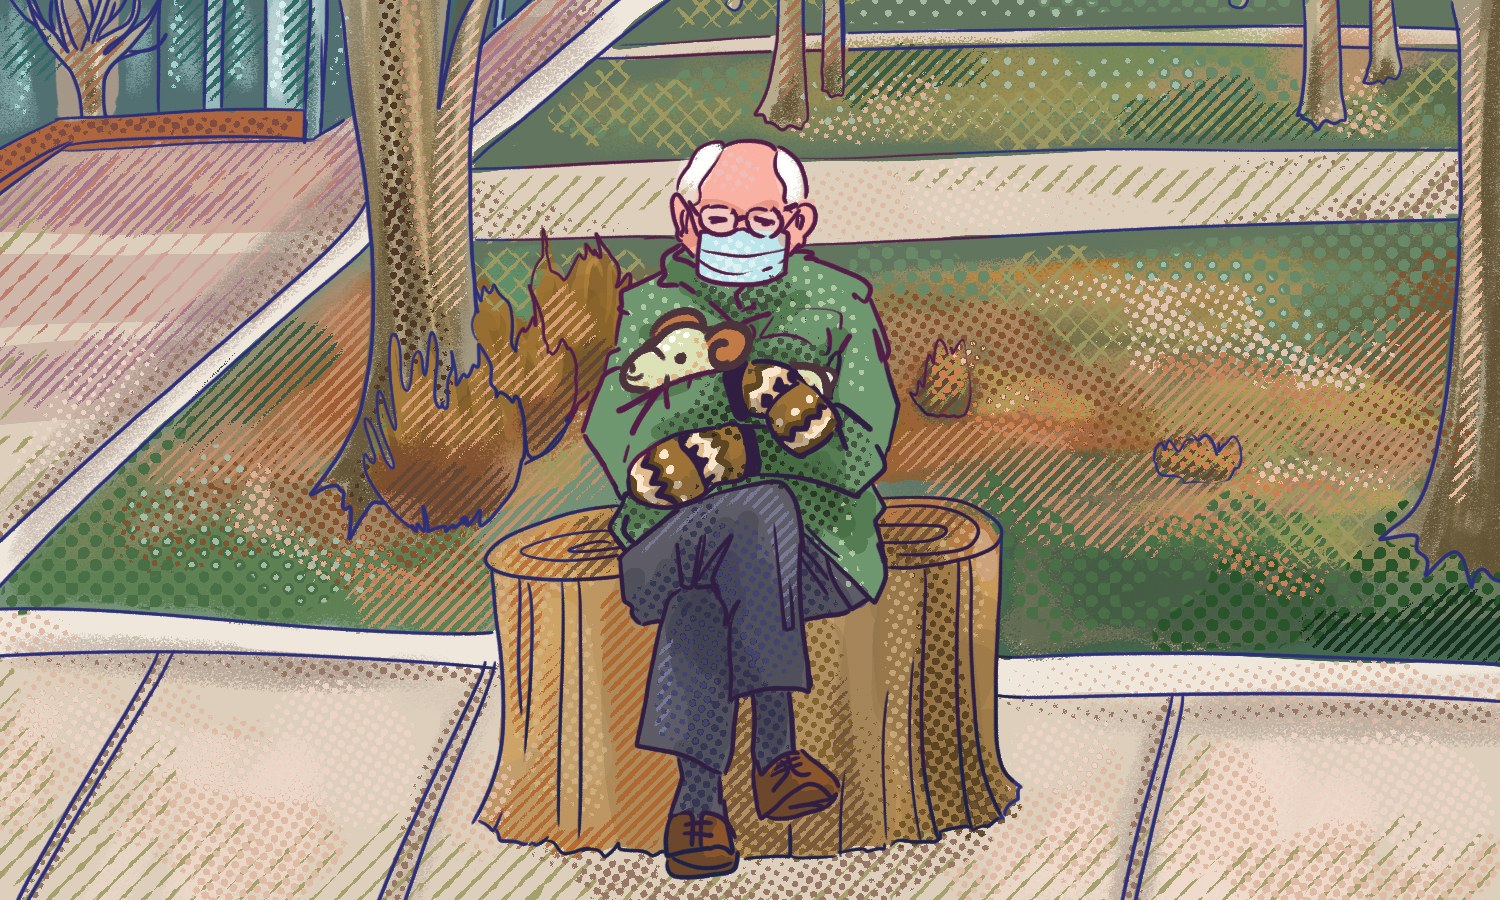 graphic illustration of Bernie Sanders wearing his mittens holding cam the ram sitting on The Stump at the Oval